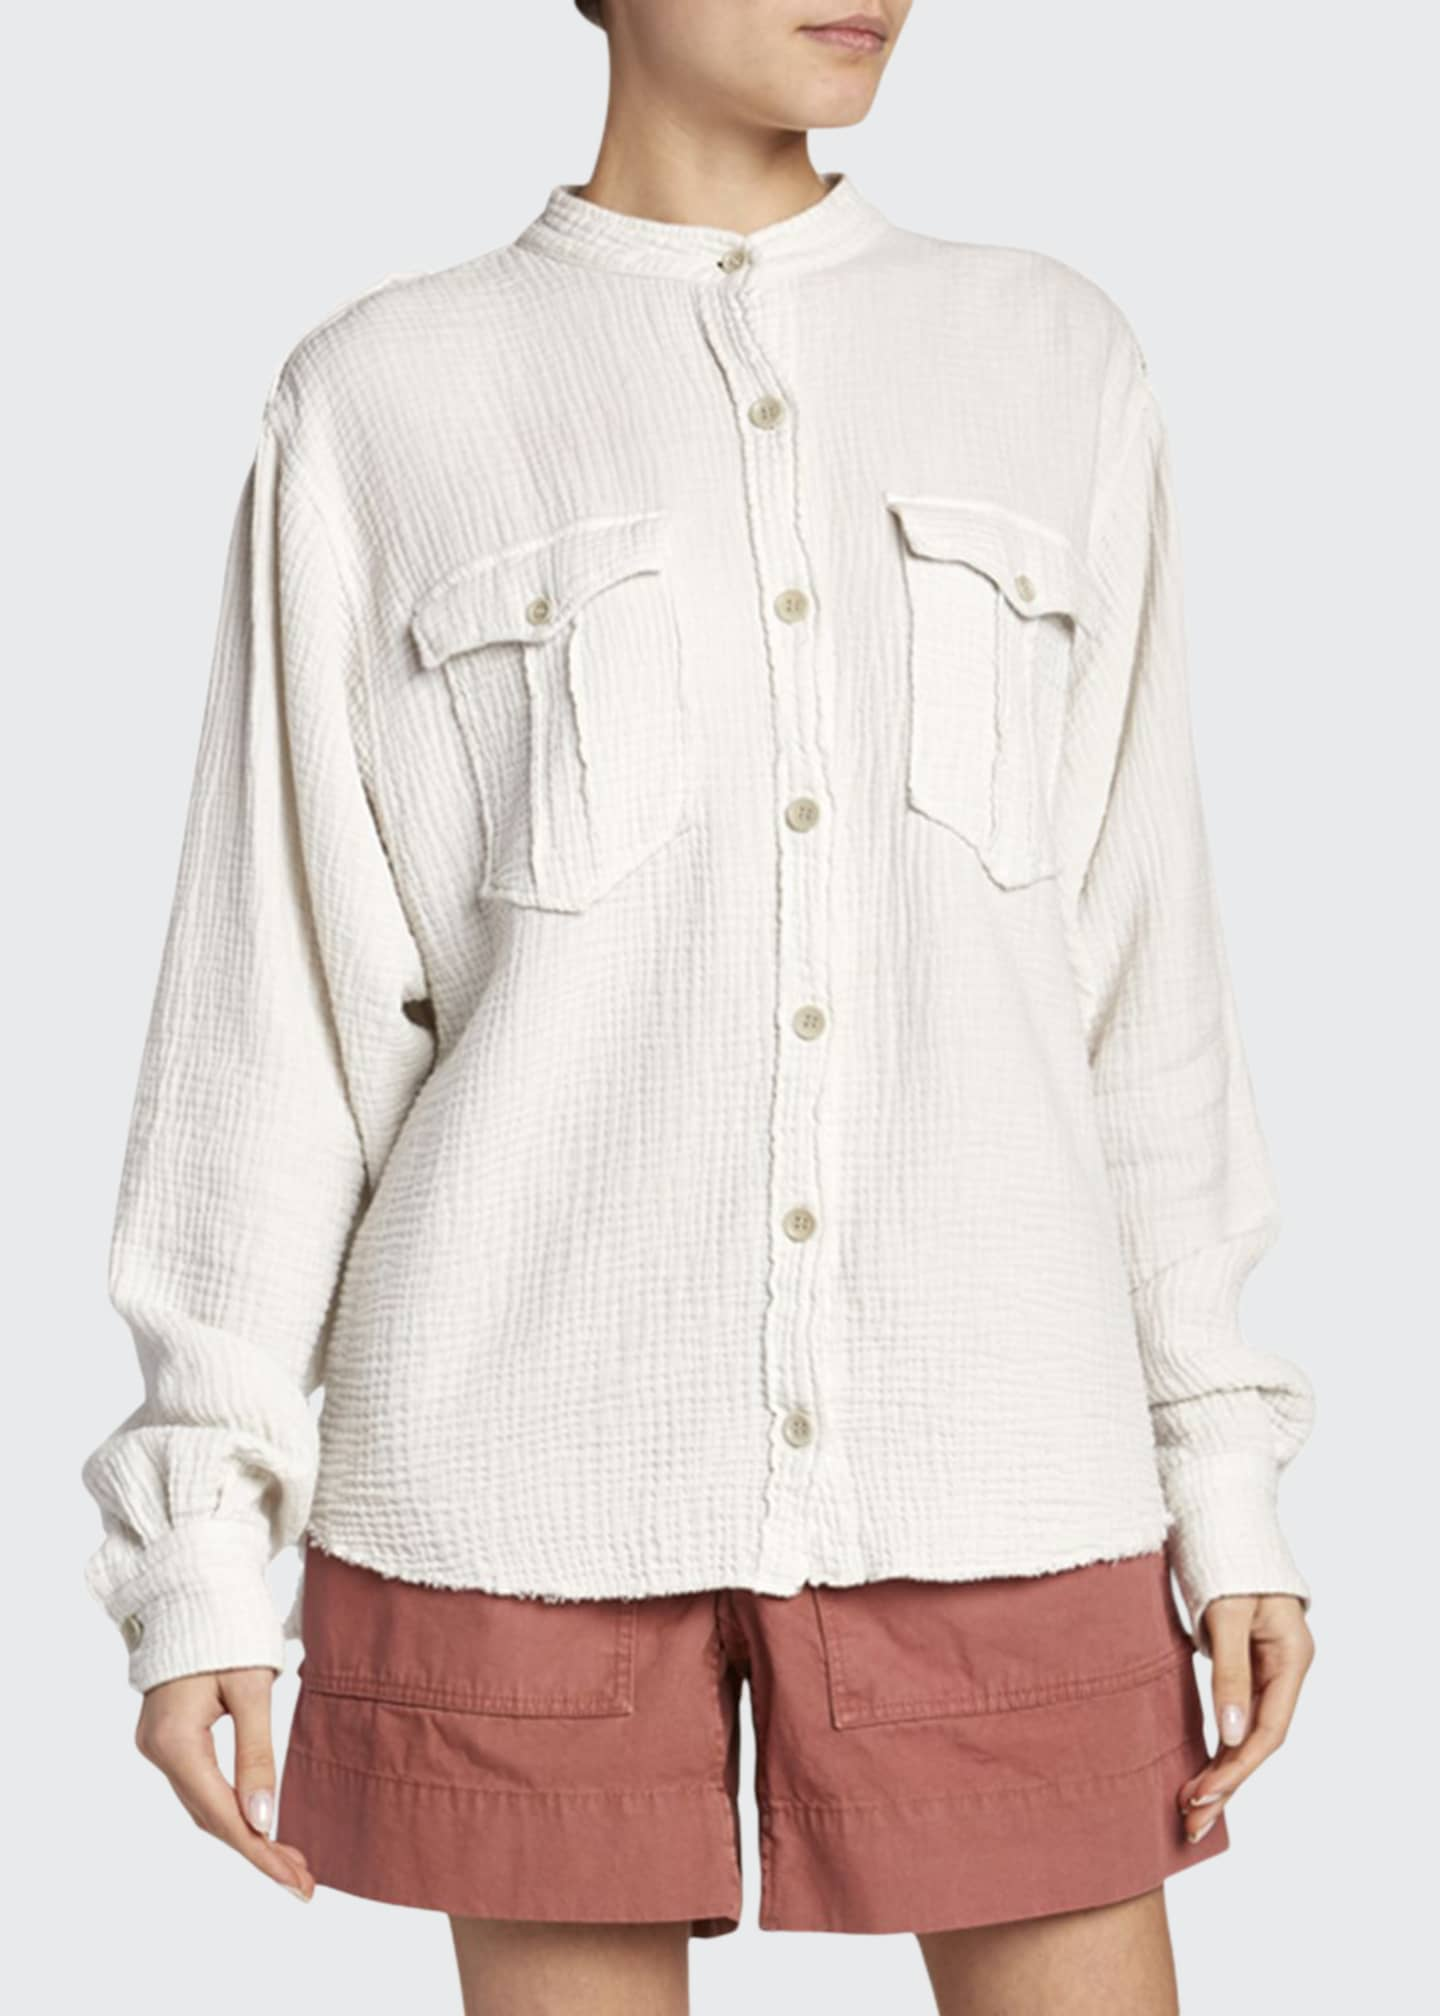 Etoile Isabel Marant Jepson Cotton Band-Collar Button-Down Top